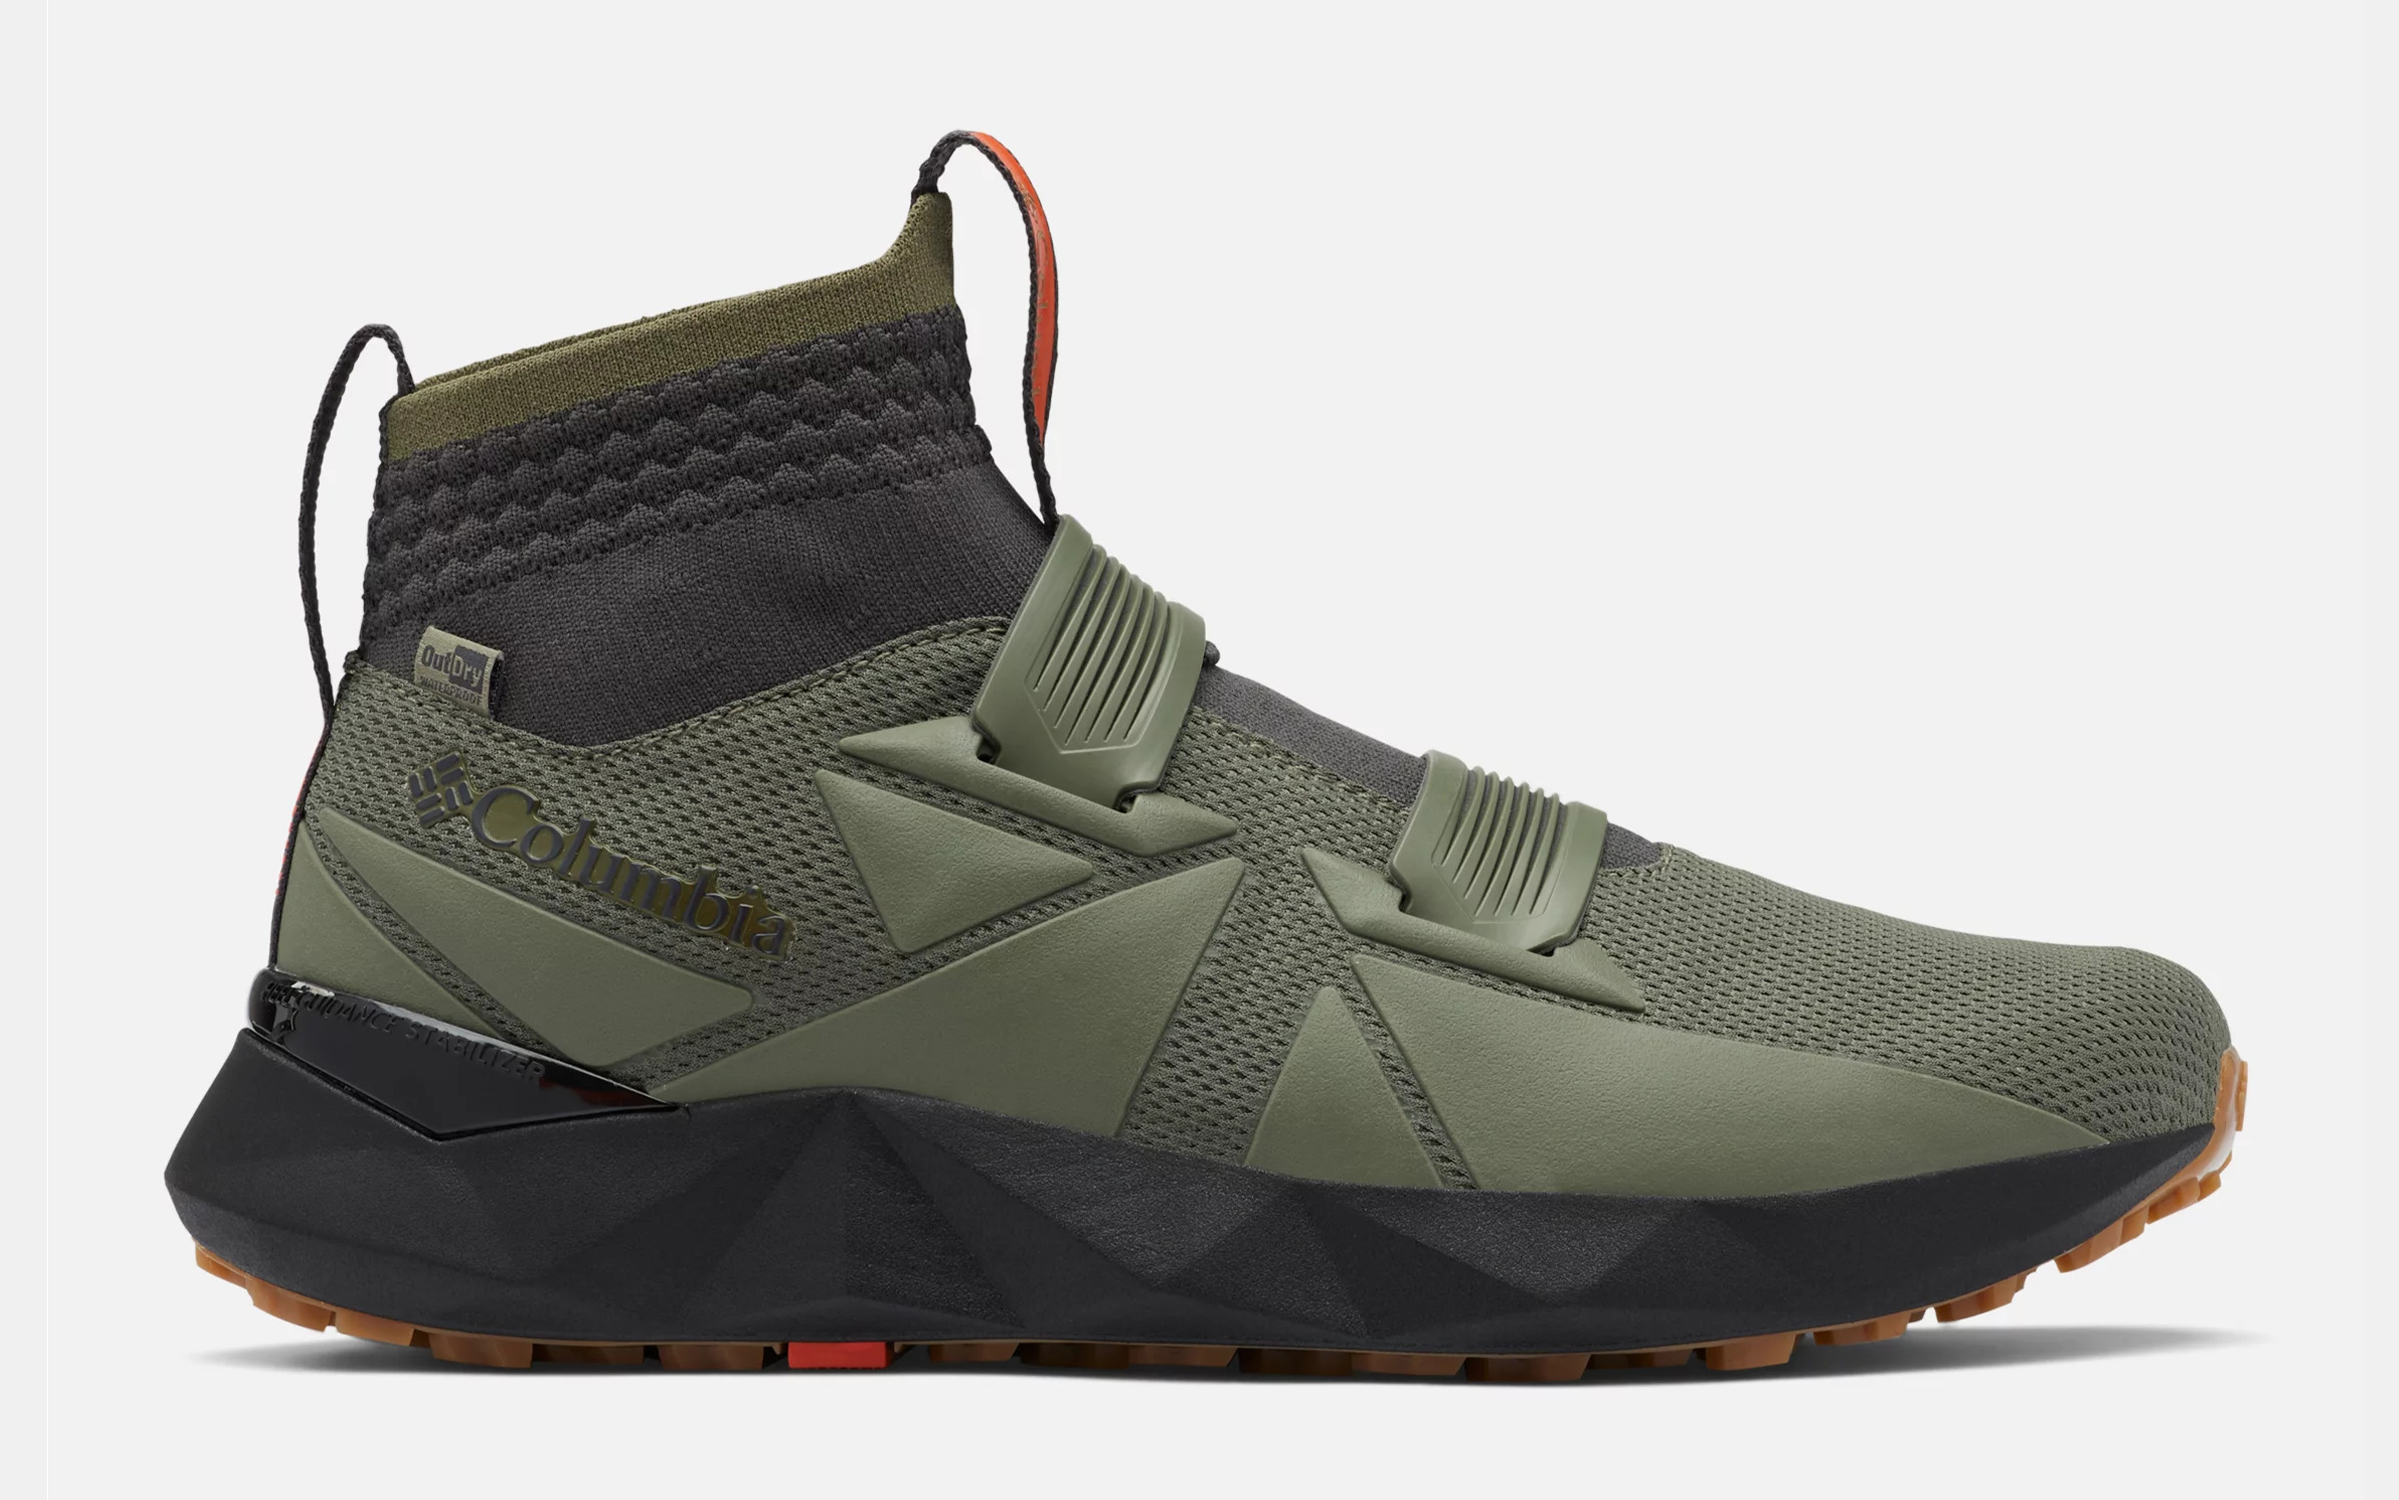 Columbia Facet 45 OutDry Shoes